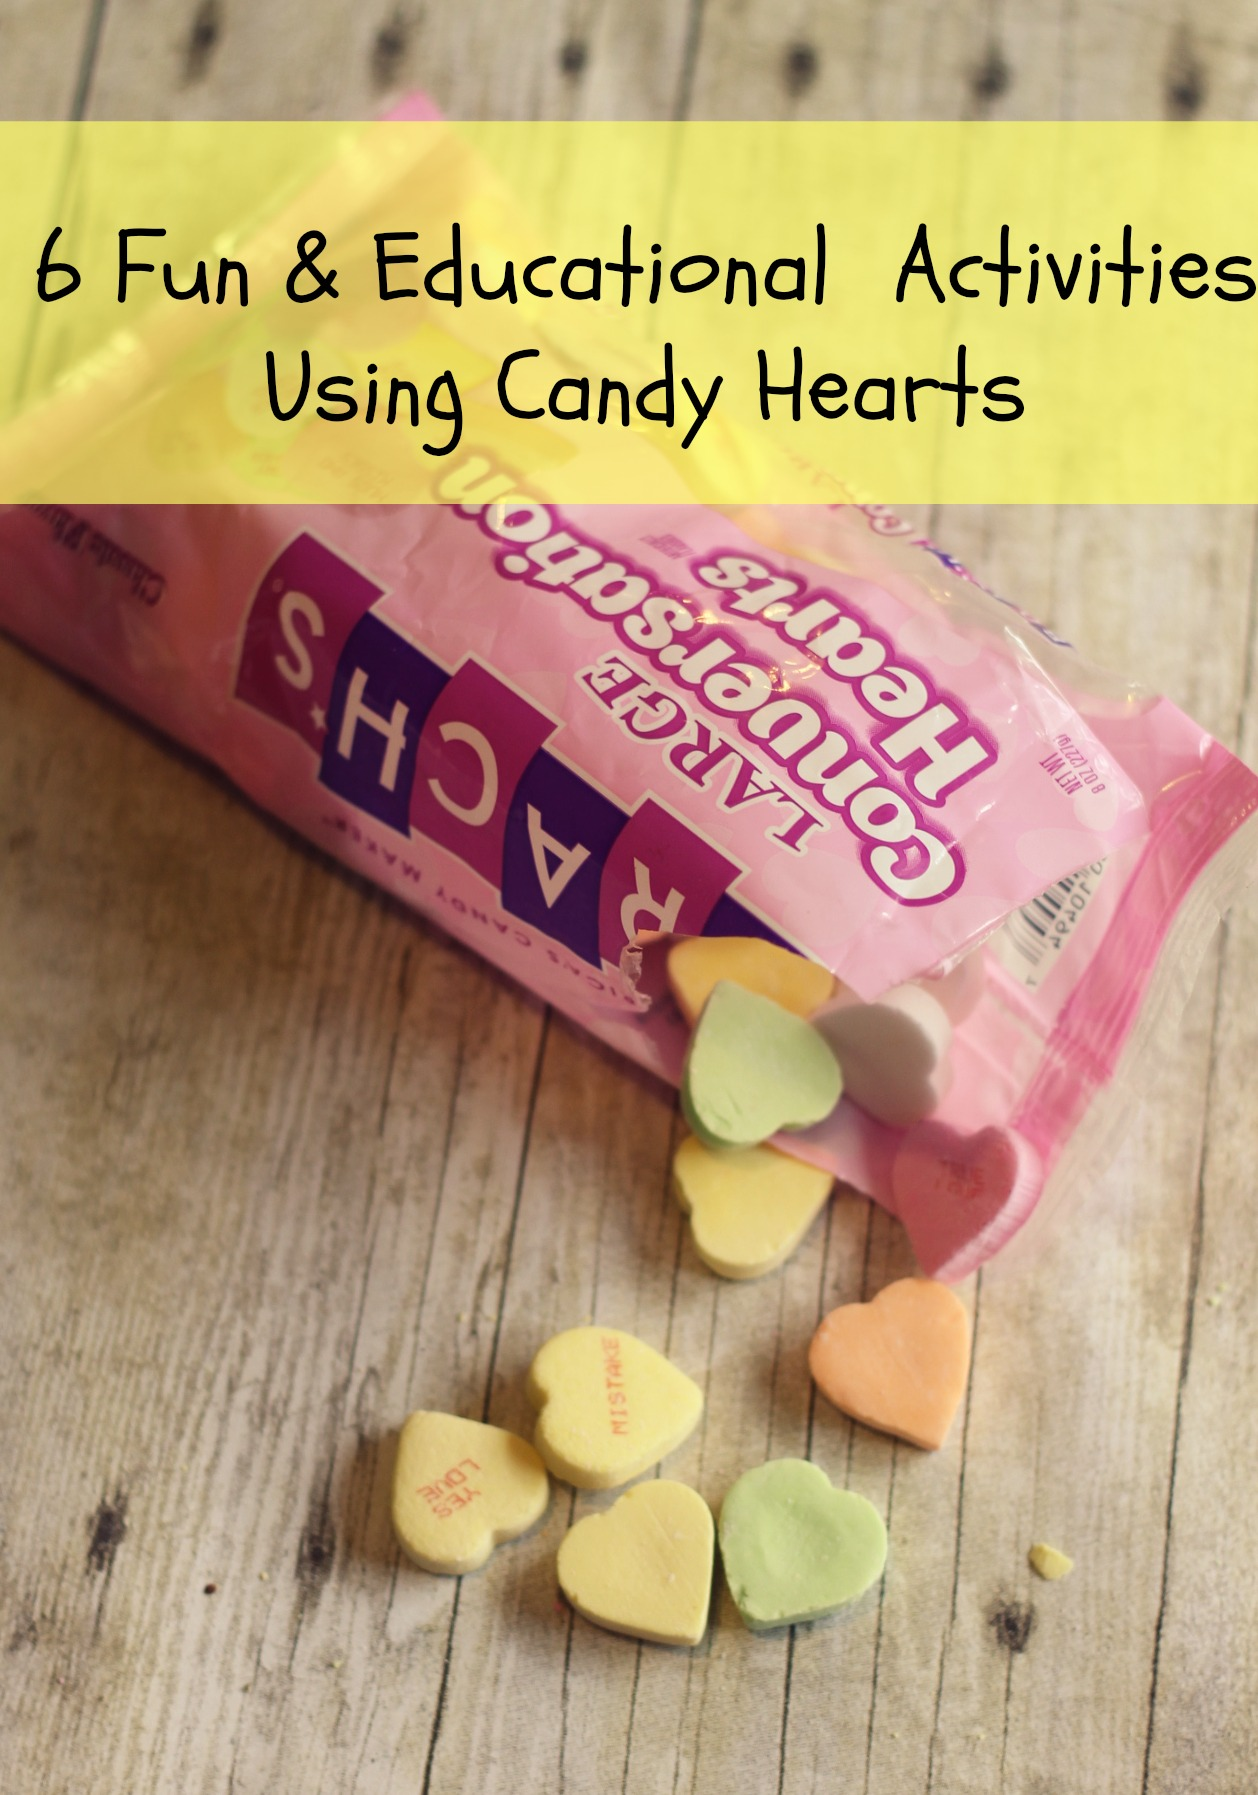 6 Fun & Educational Activities Using Valentine's Day Heart Candy